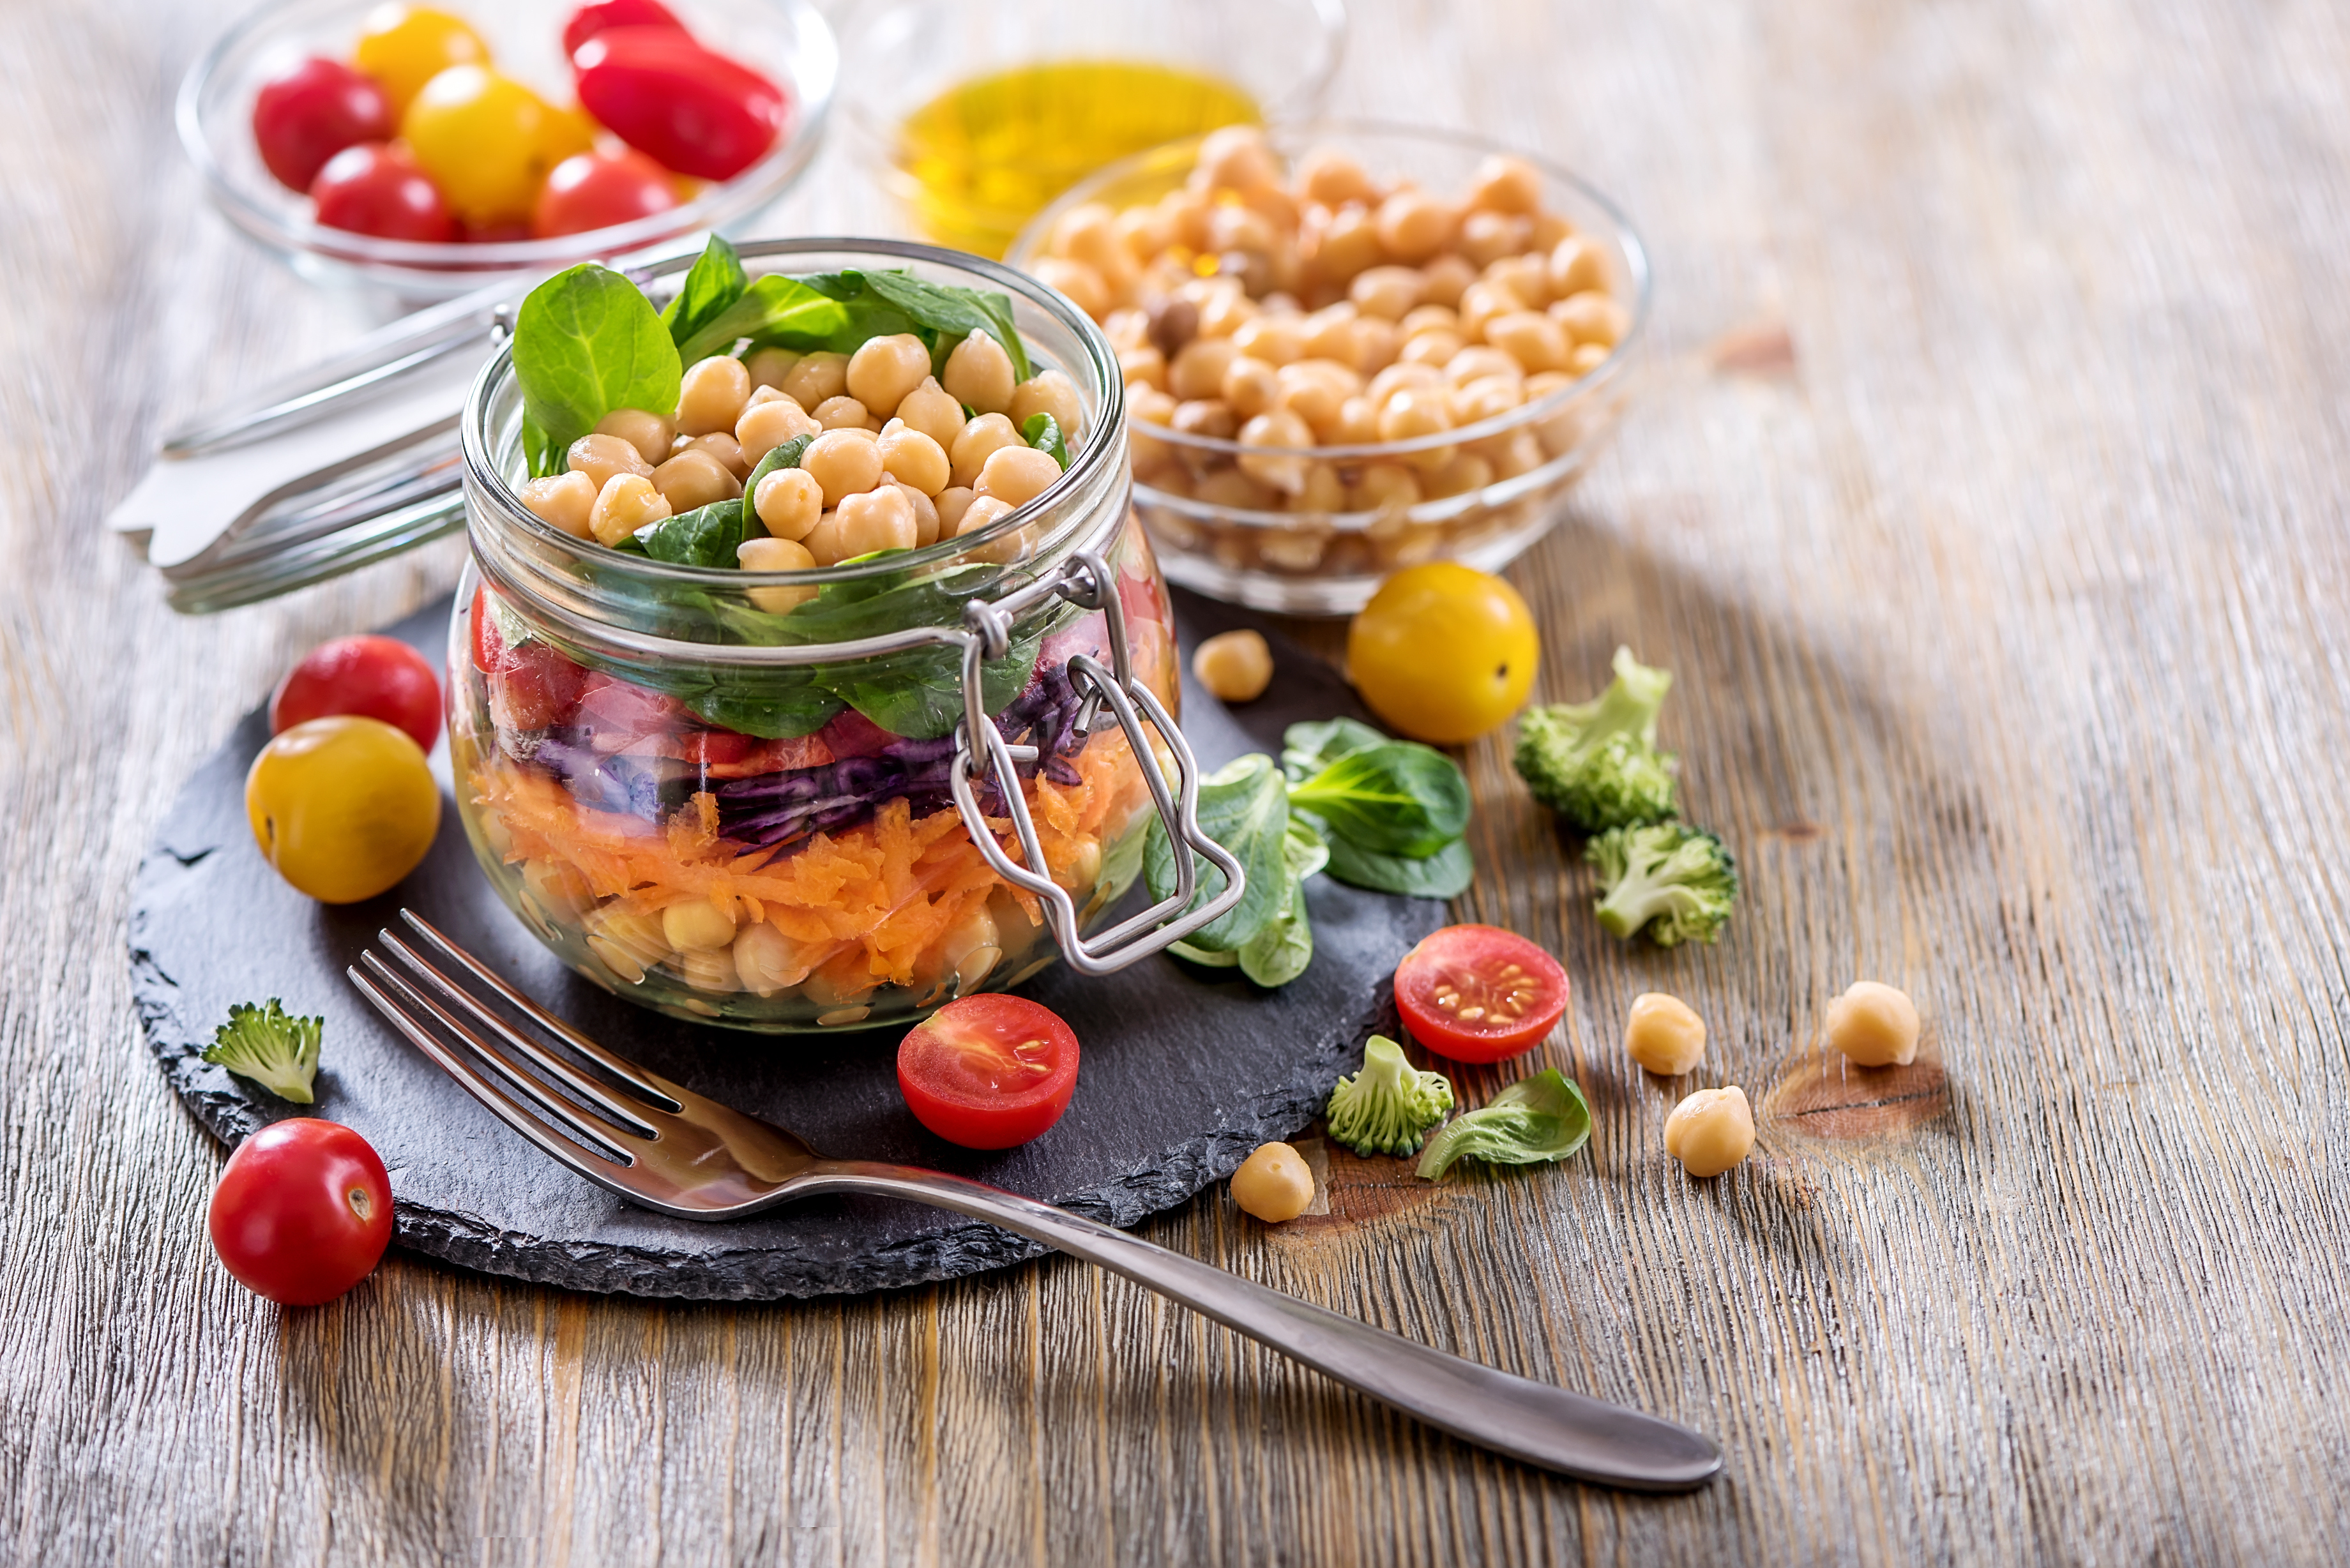 Healthy Packed Lunch Ideas That Aren't Sandwiches